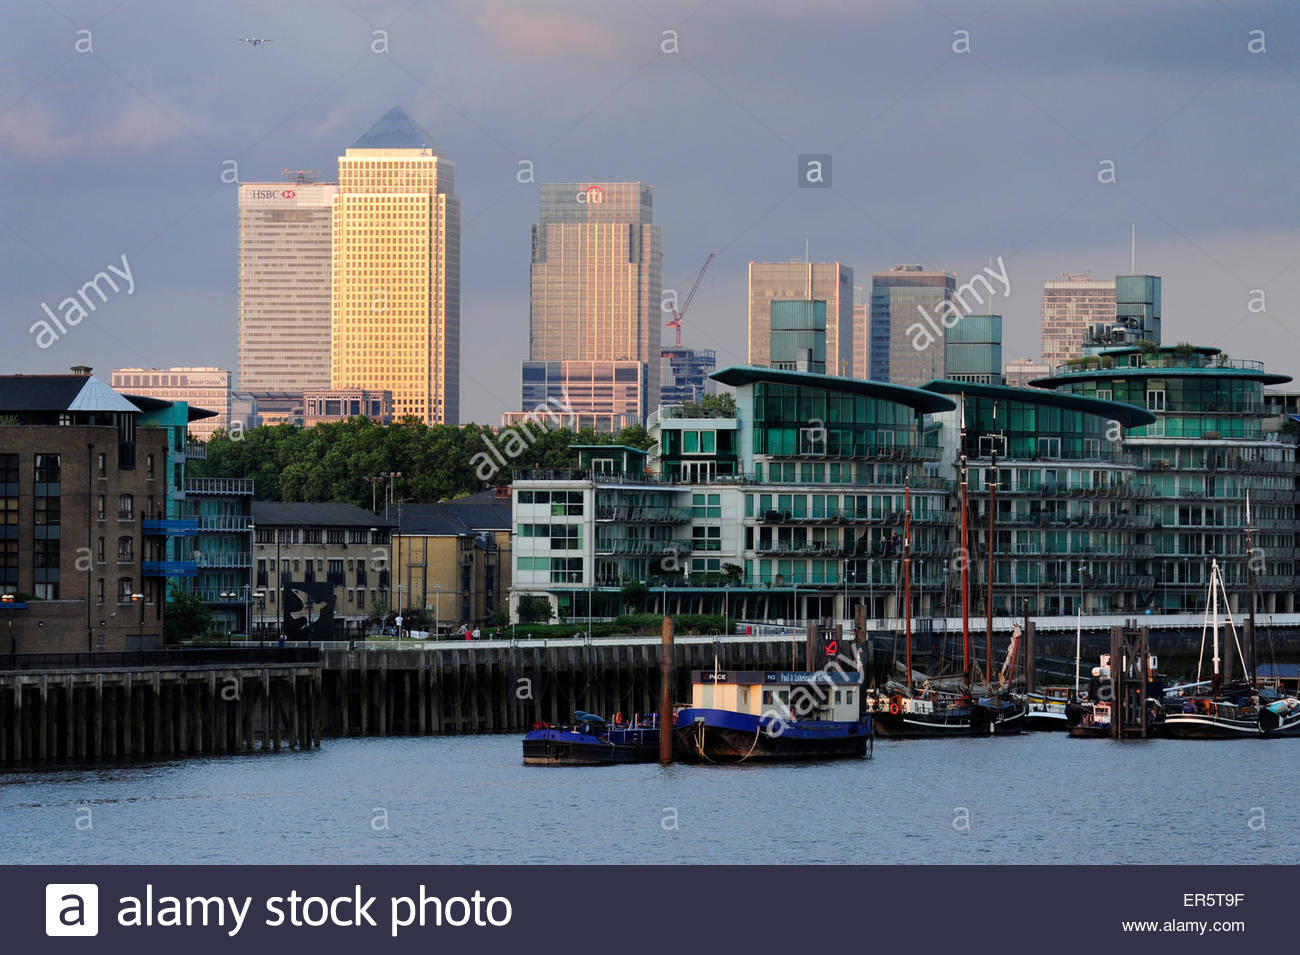 River Thames at Wapping with office towers in the background, One Canada Square, HSBC Tower and Citigroup Centre - Stock Image